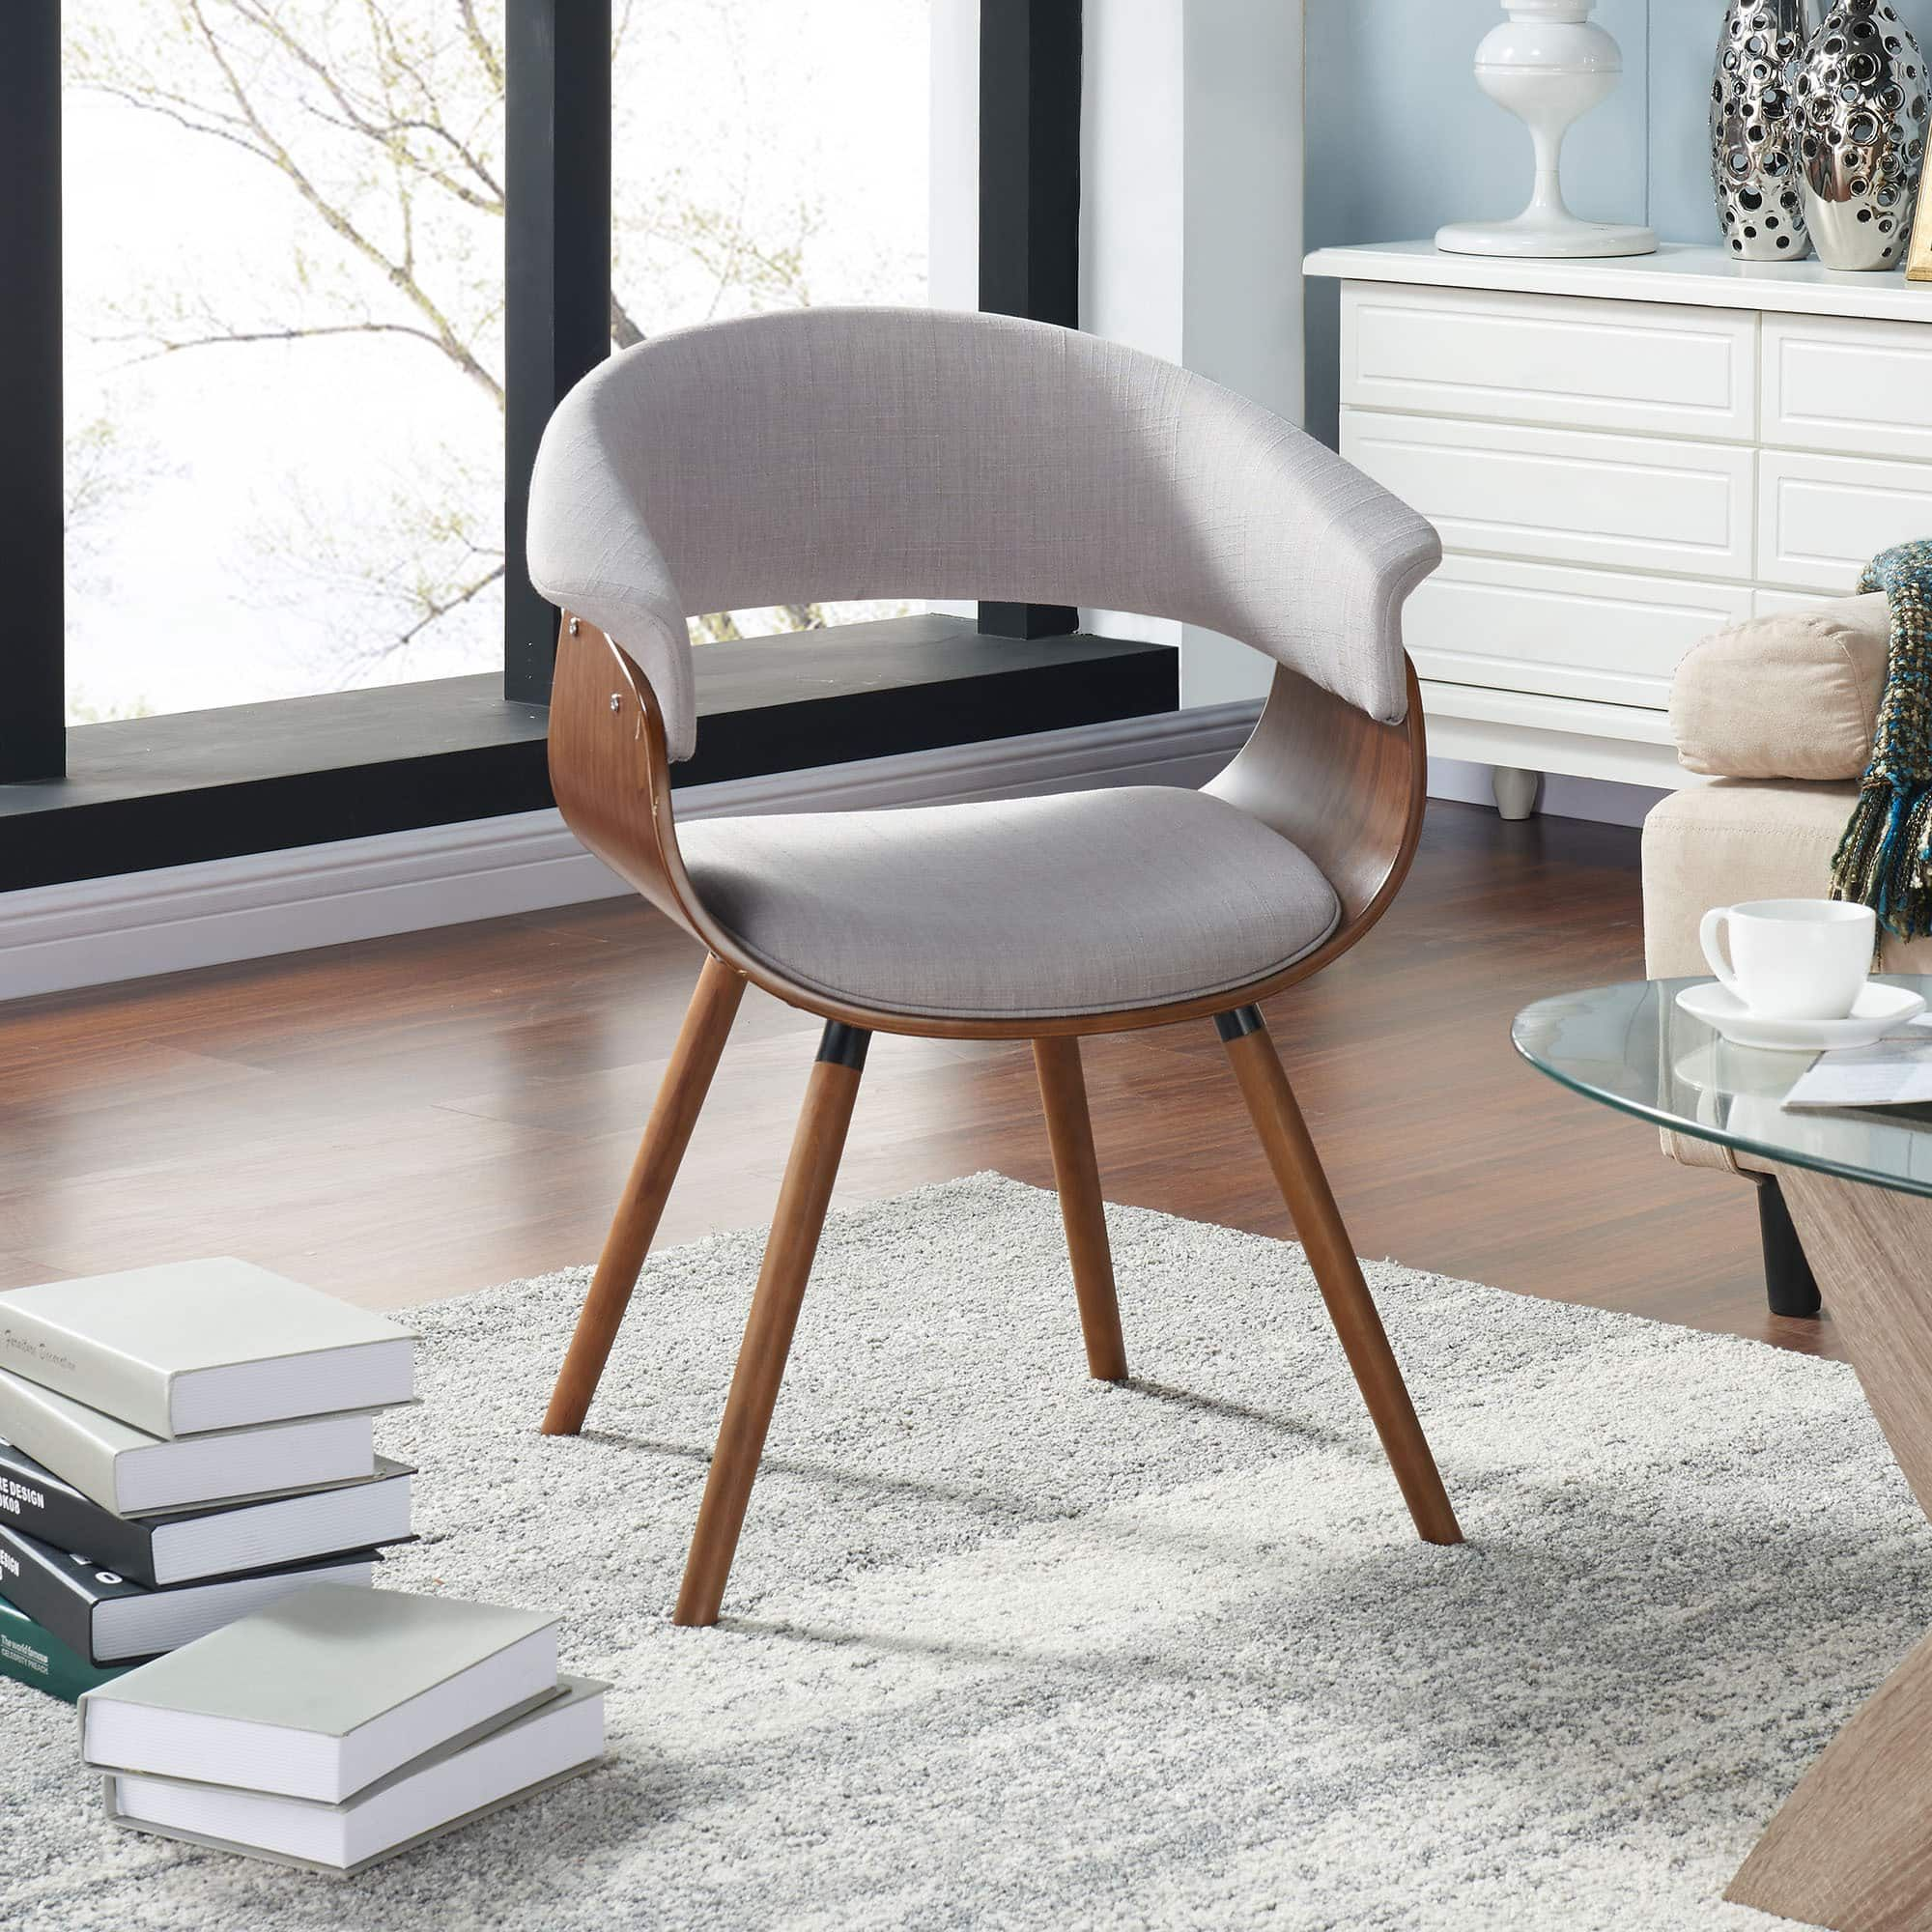 Carson carrington visby midcentury bent wood accent chair